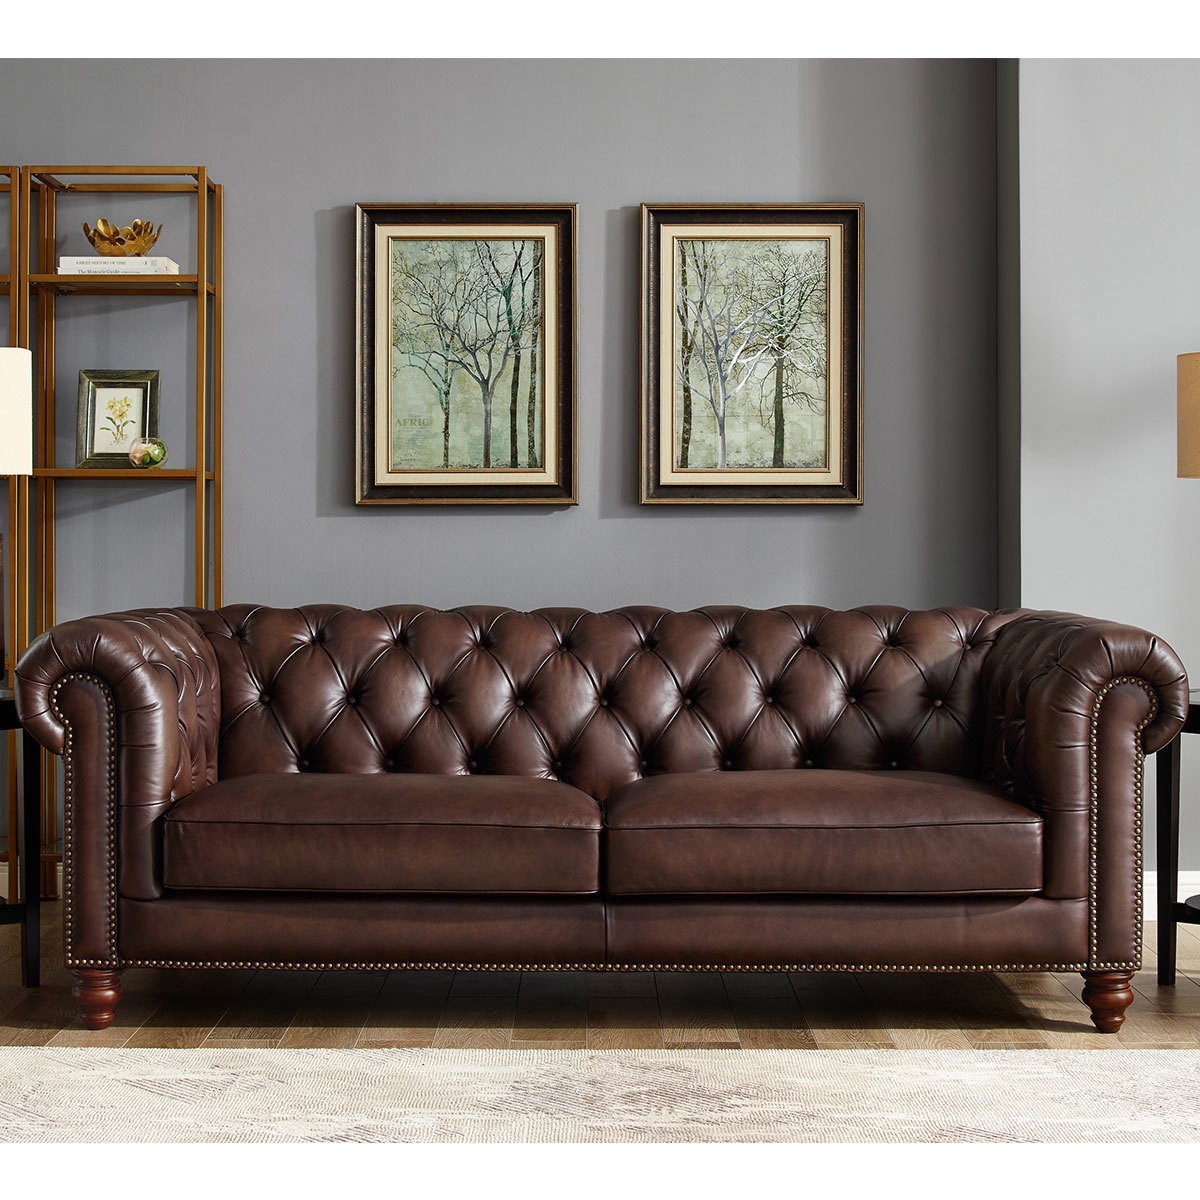 Allington 3 Seater Brown Leather Chesterfield Sofa Costco Uk